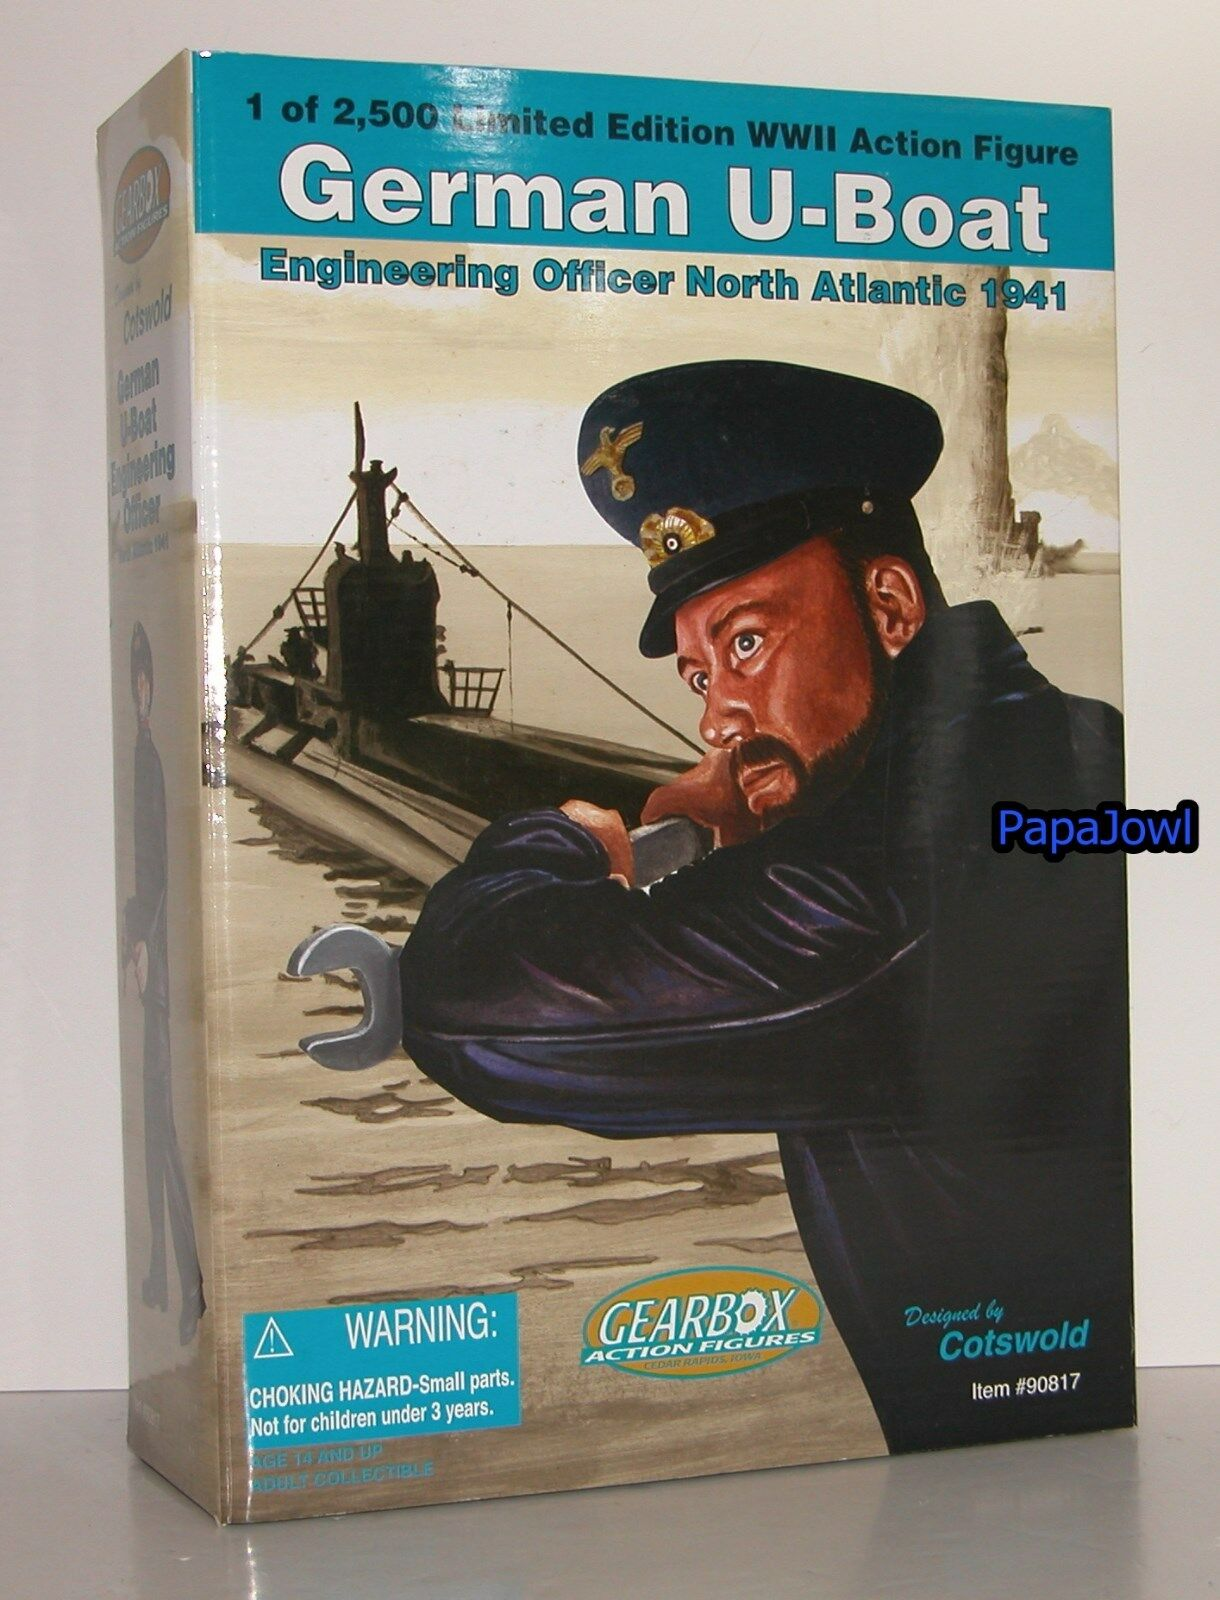 Gearbox Cotswold WWII 1941 German Navy U-Boat Engineering Officer Atlantic 12